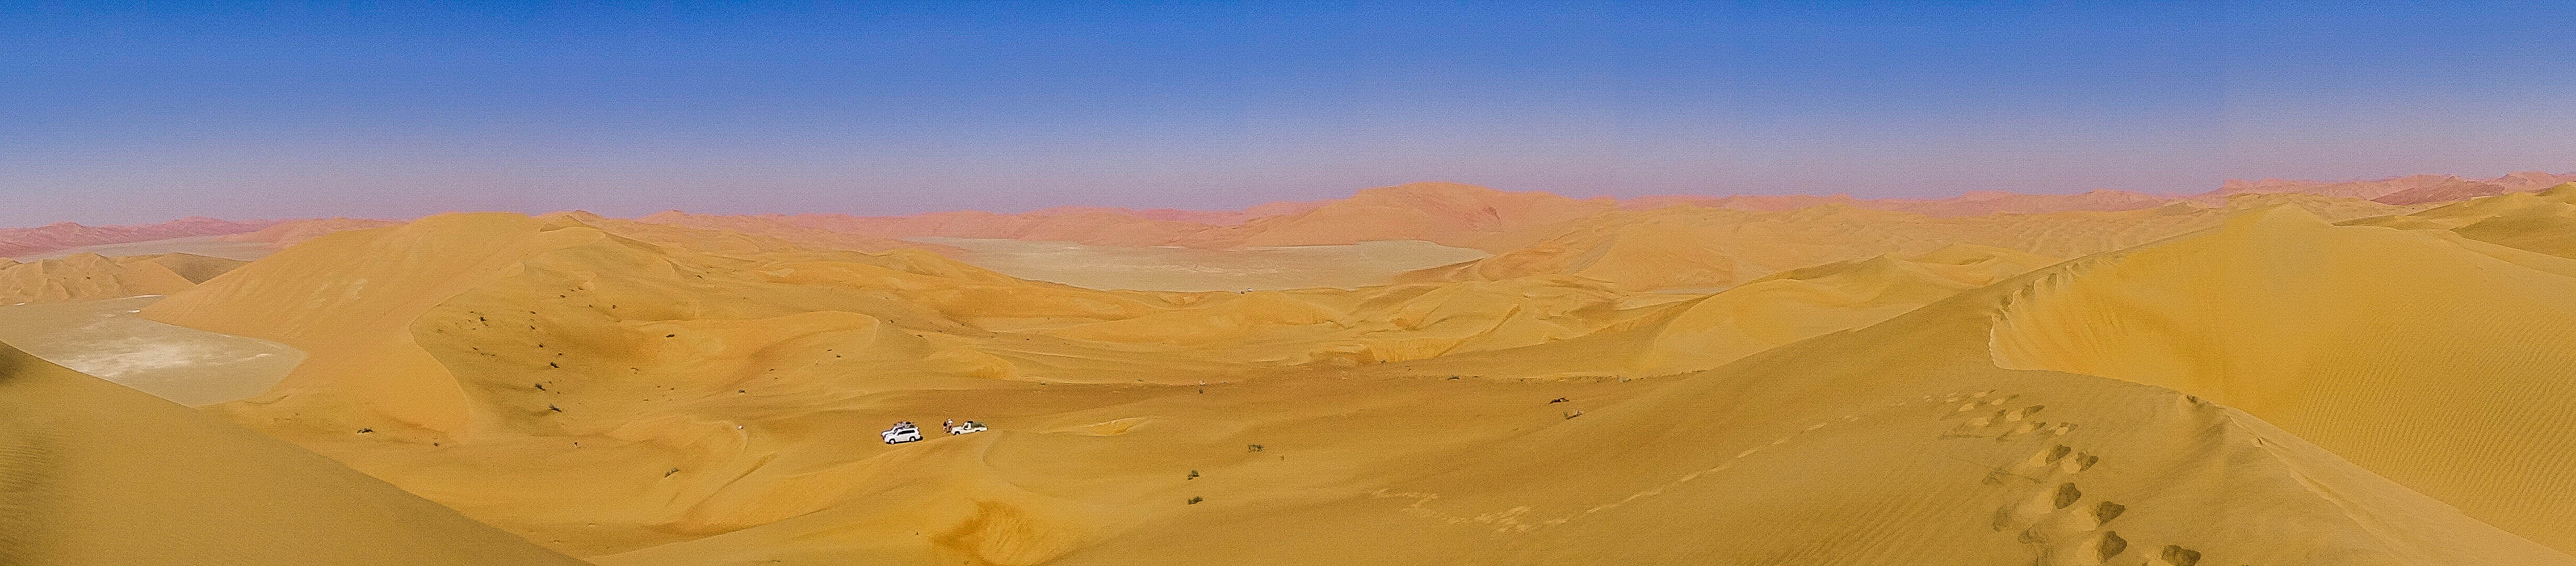 Grandiose extent of massive sand dunes in the Rub' Al-Khali (photo: Florent Egal)